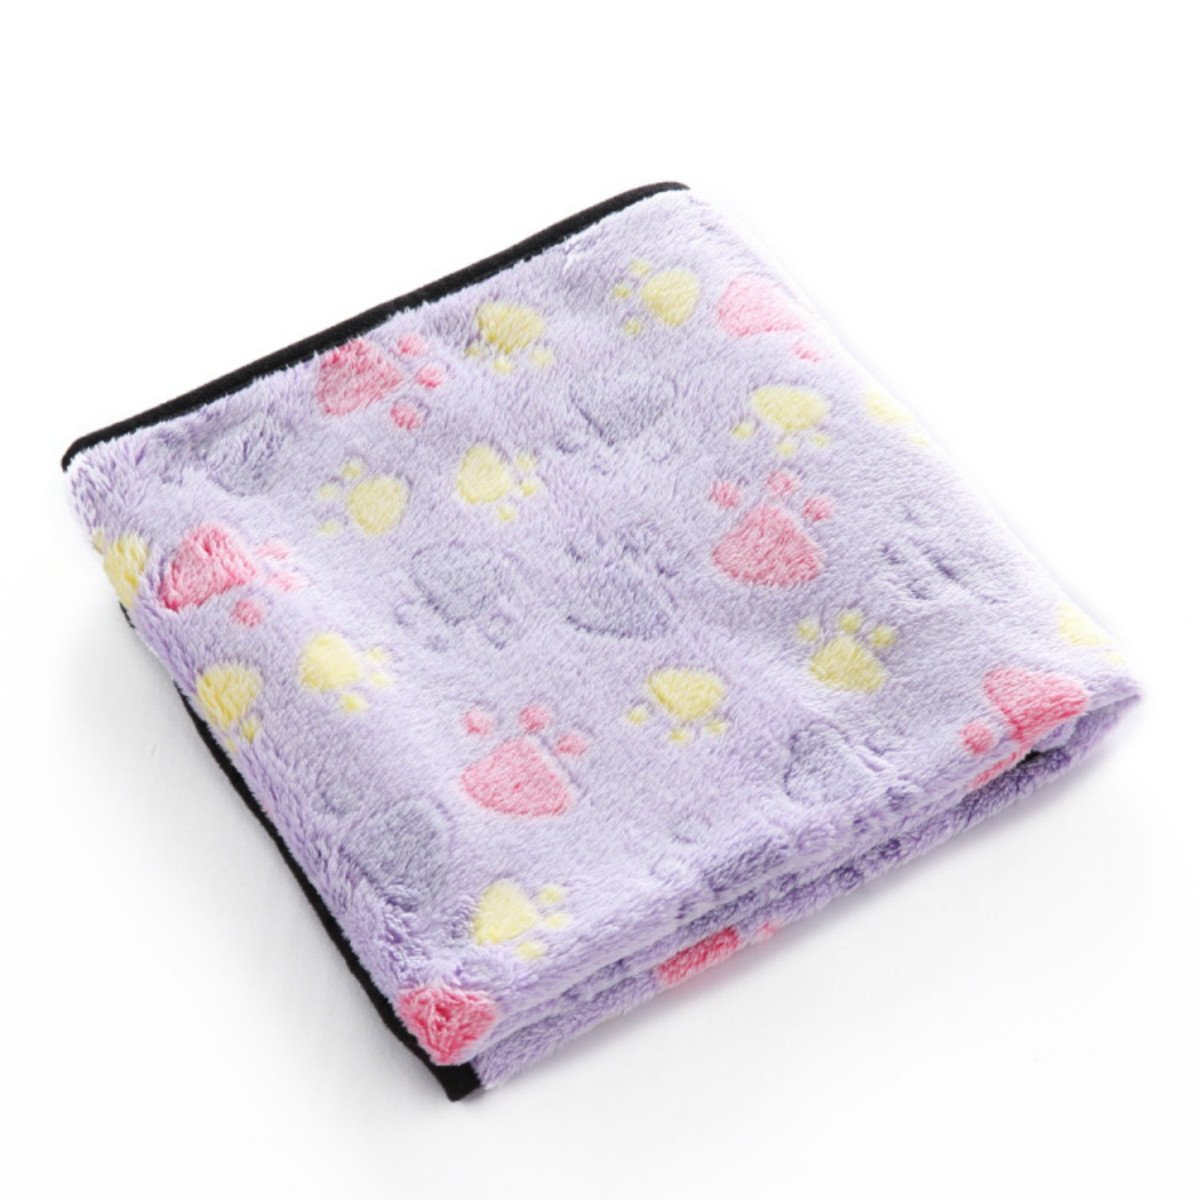 PetBoBo Pet Dog Cat Puppy Blanket Warm Dog Cat Warm Blankets Pet Sleep Mat Pad Bed Cover, Soft Blanket for Pet, Super Soft Micro Plush Pet Blanket Cushion Mat for Animals by PetBoBo (Image #3)